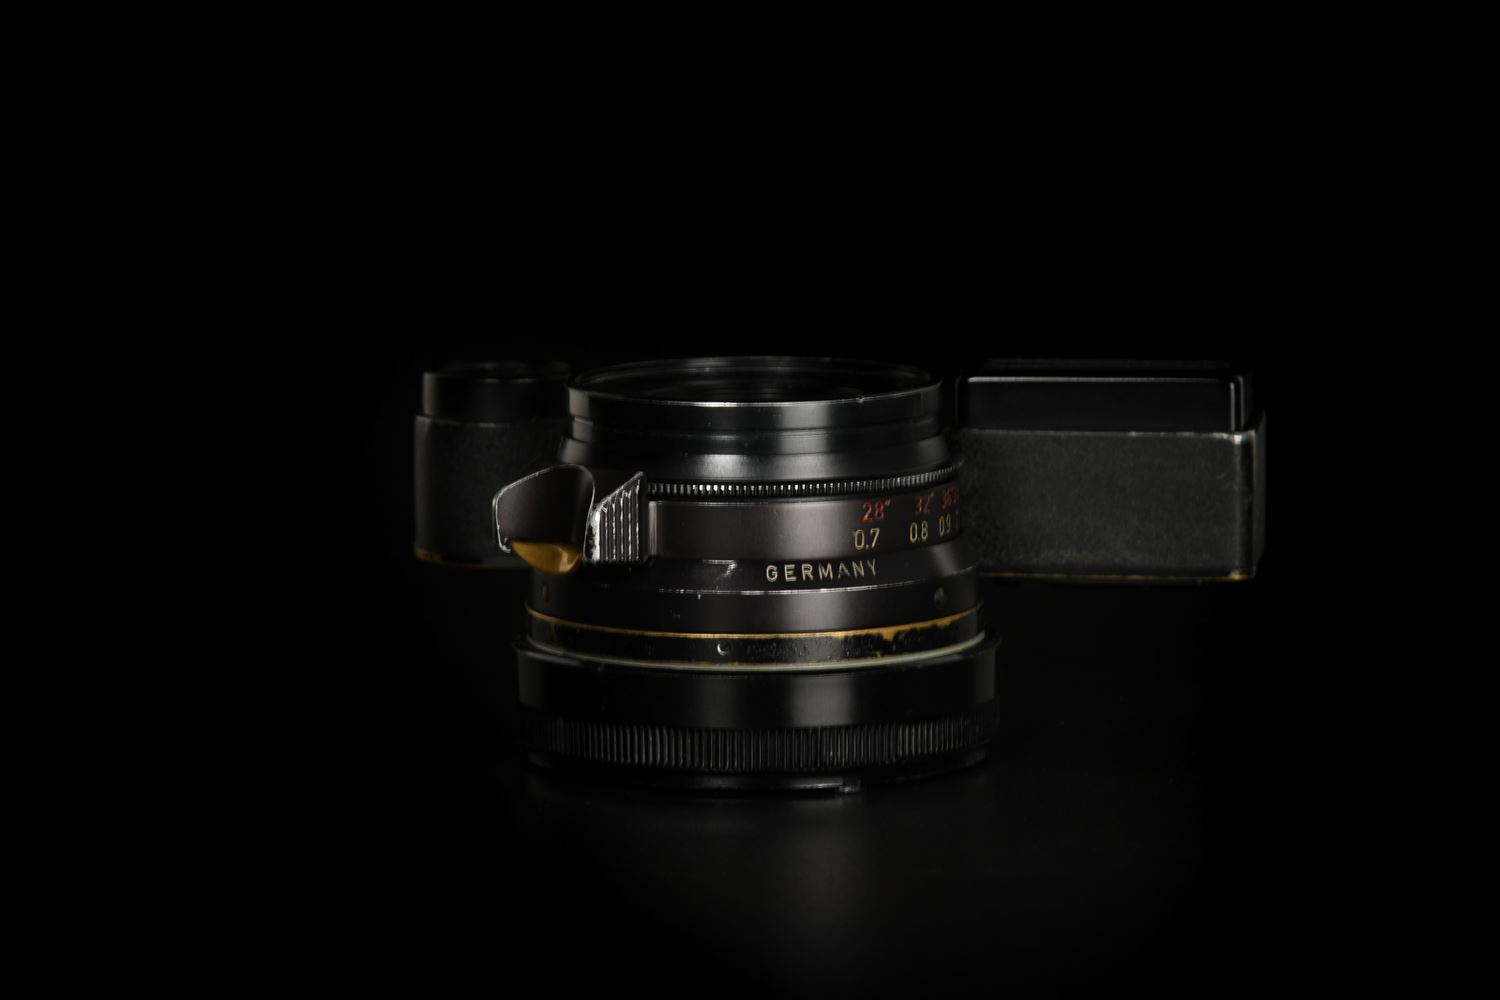 Picture of Leica Summicron-M 35mm f/2 Ver.1 8-element Germany Black Paint M3